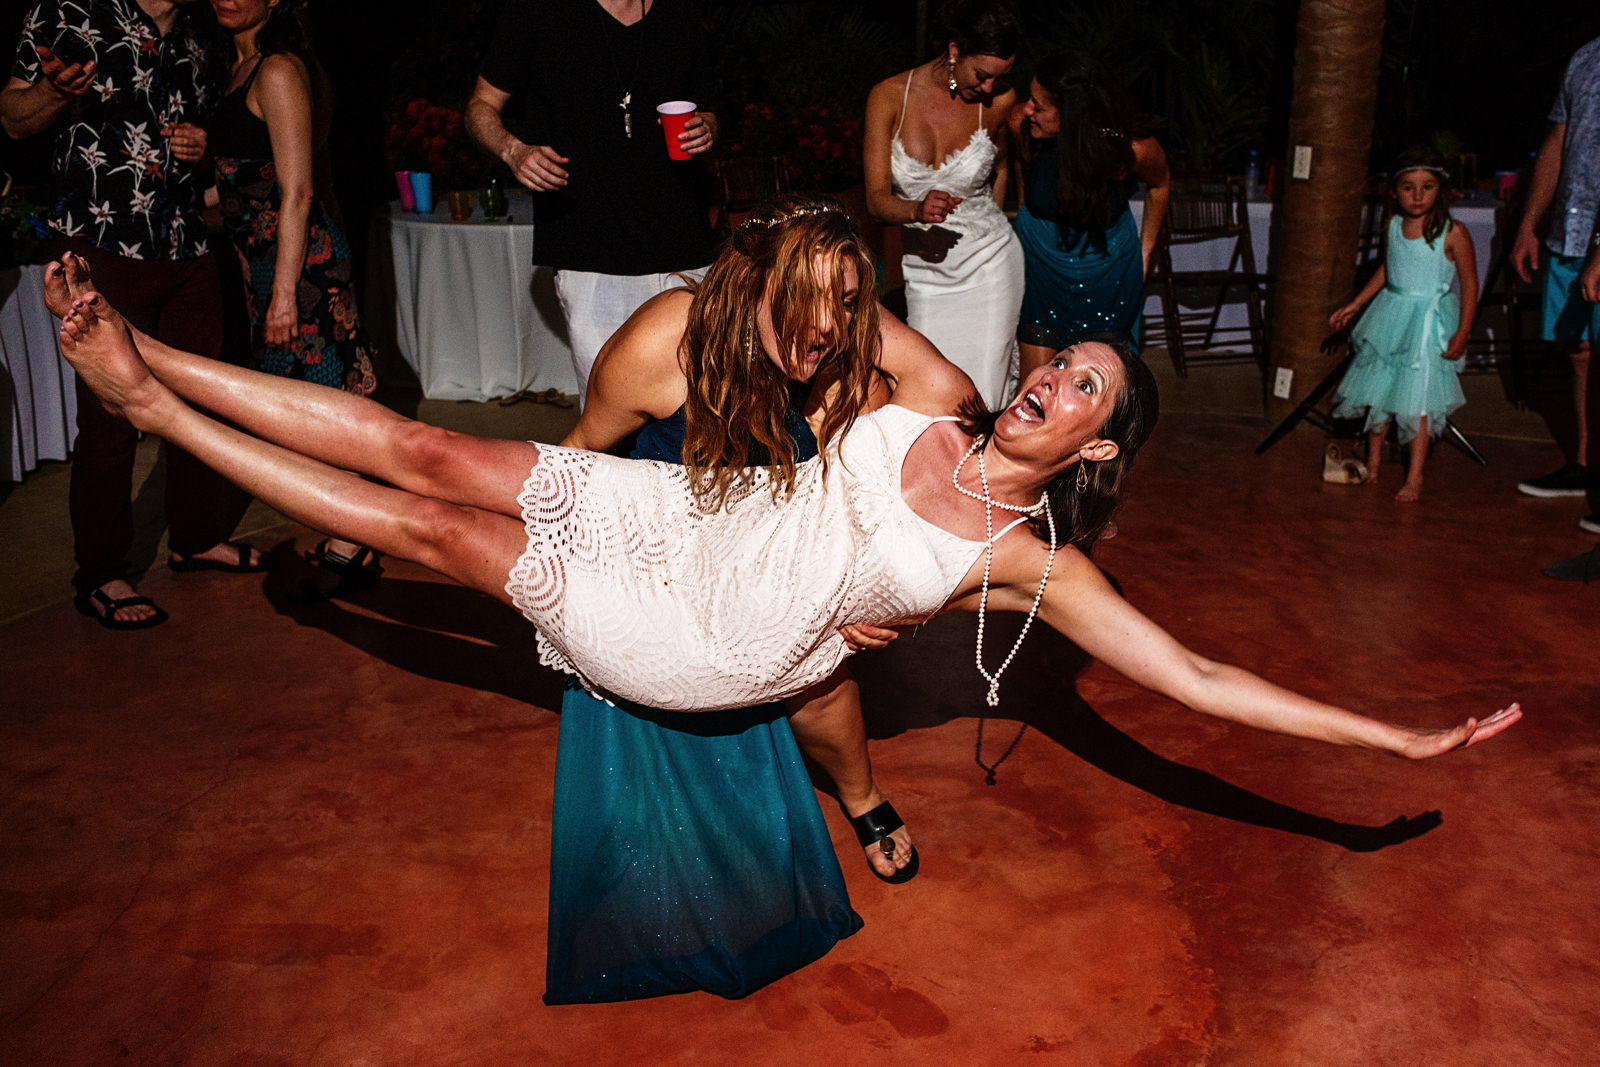 bridesmaid carries a female wedding guest in the dance floor a the party